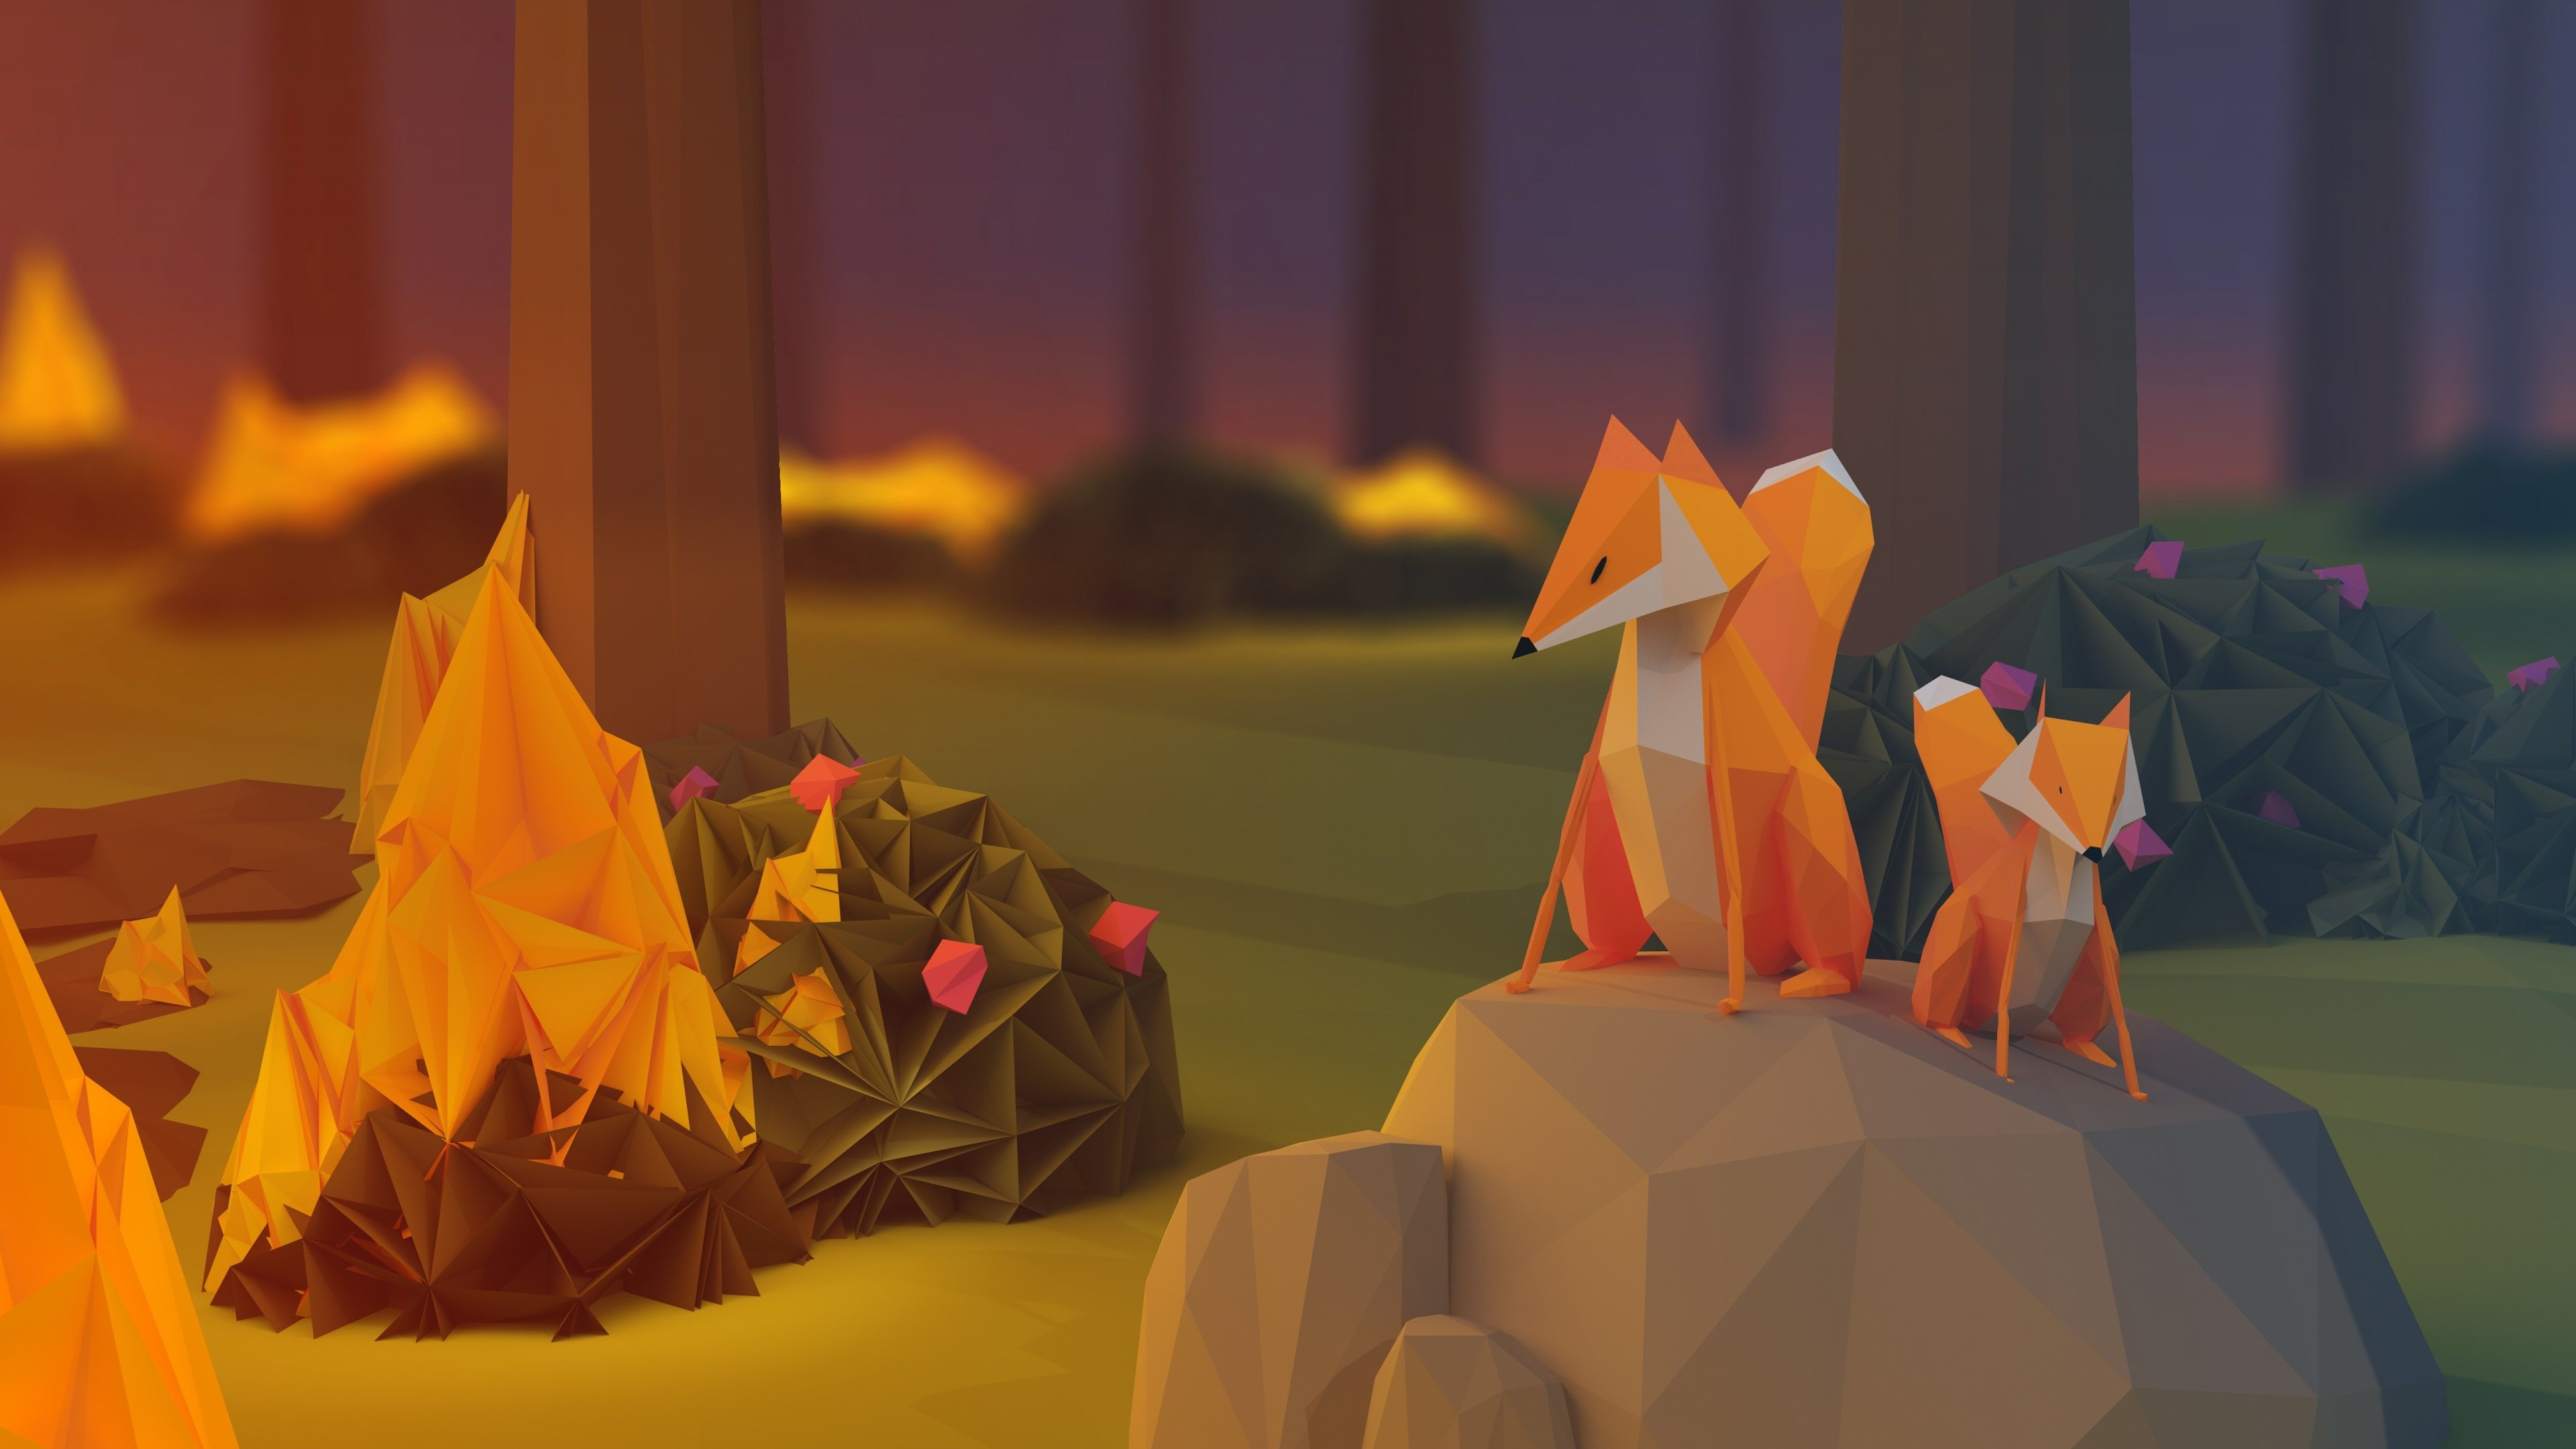 Low Poly Foxes Wallpaper for Desktop 4K 3840x2160